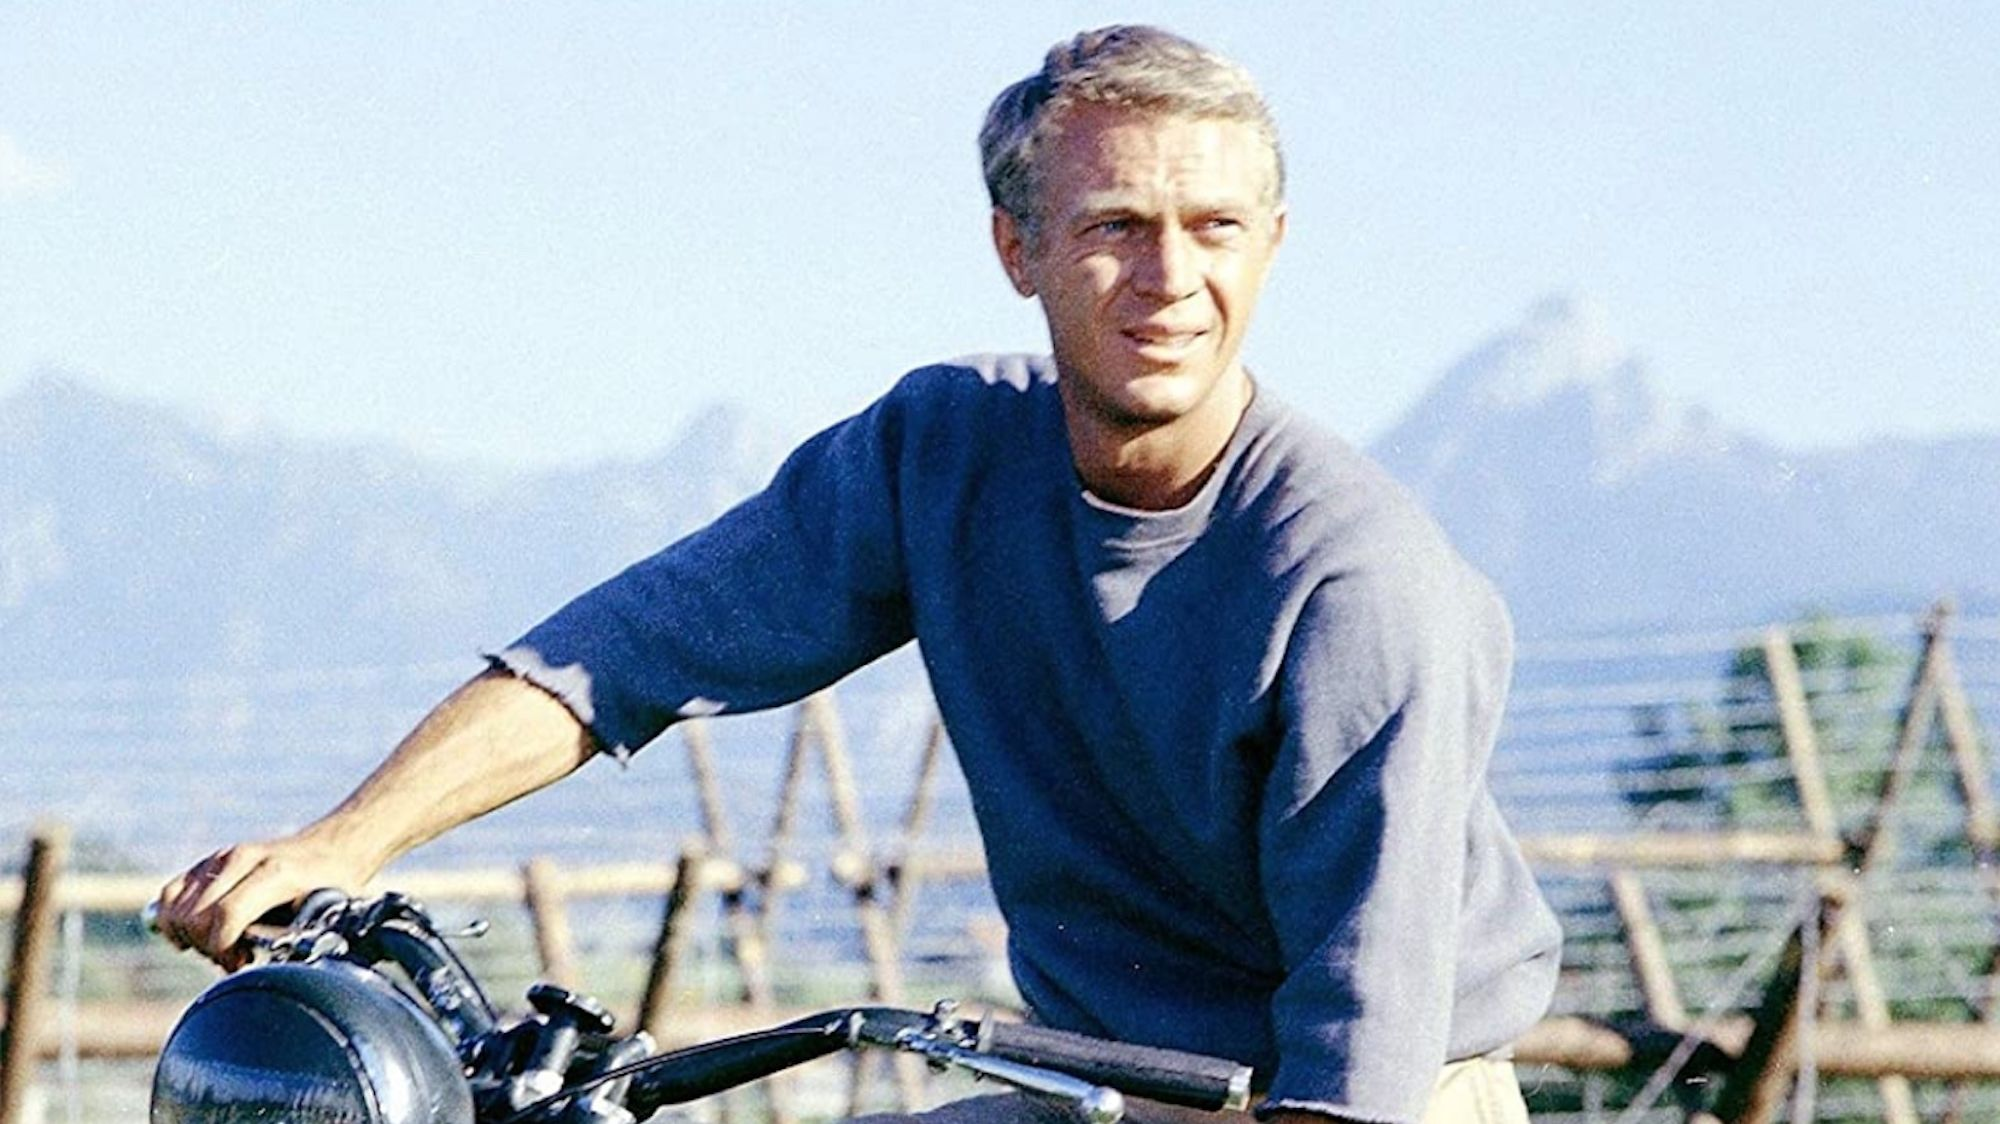 8 Fast Facts About Steve McQueen